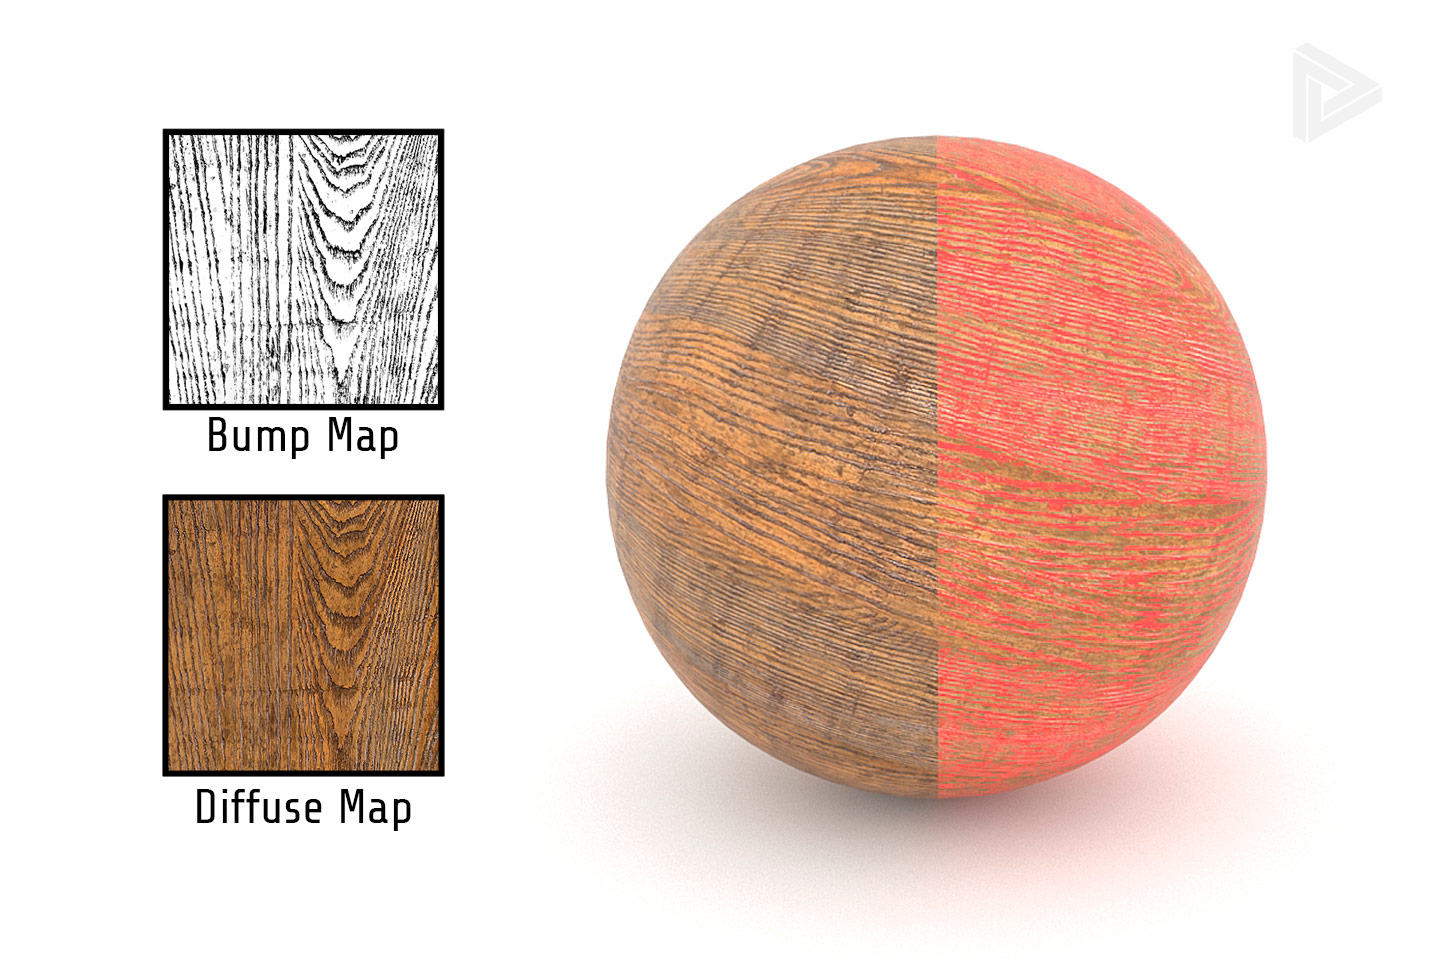 Bump map alignment overlay diffuse map rendernode